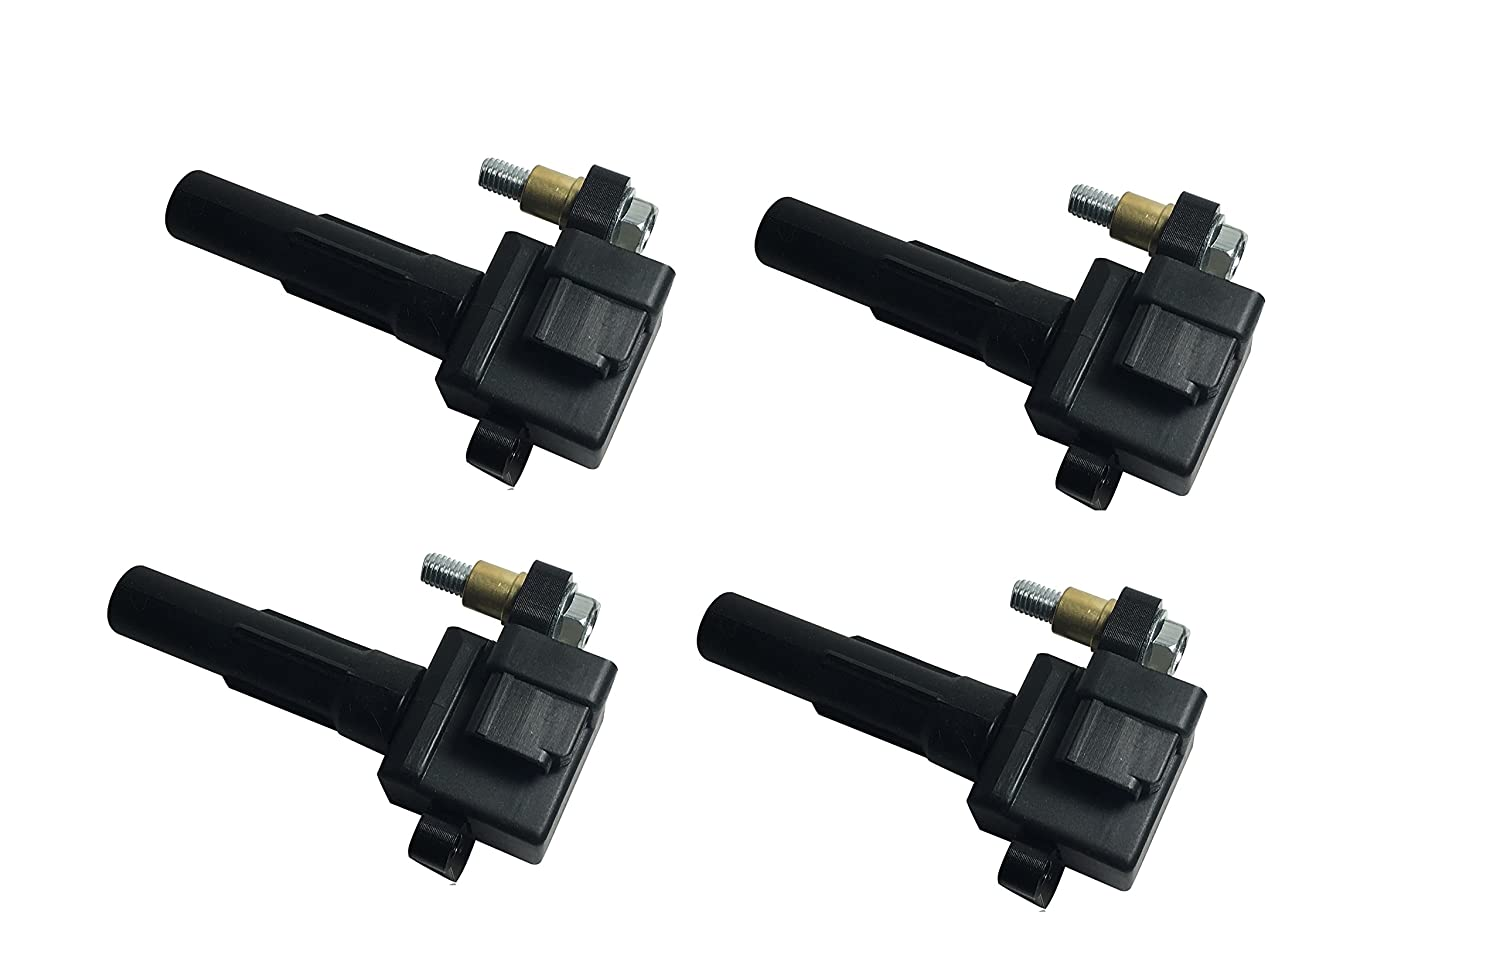 Ignition Coil Pack Set of 4 - Subaru Impreza WRX, WRX Wagon - Replaces# 22433AA421 - 2002, 2003, 2004, 2005 models Image